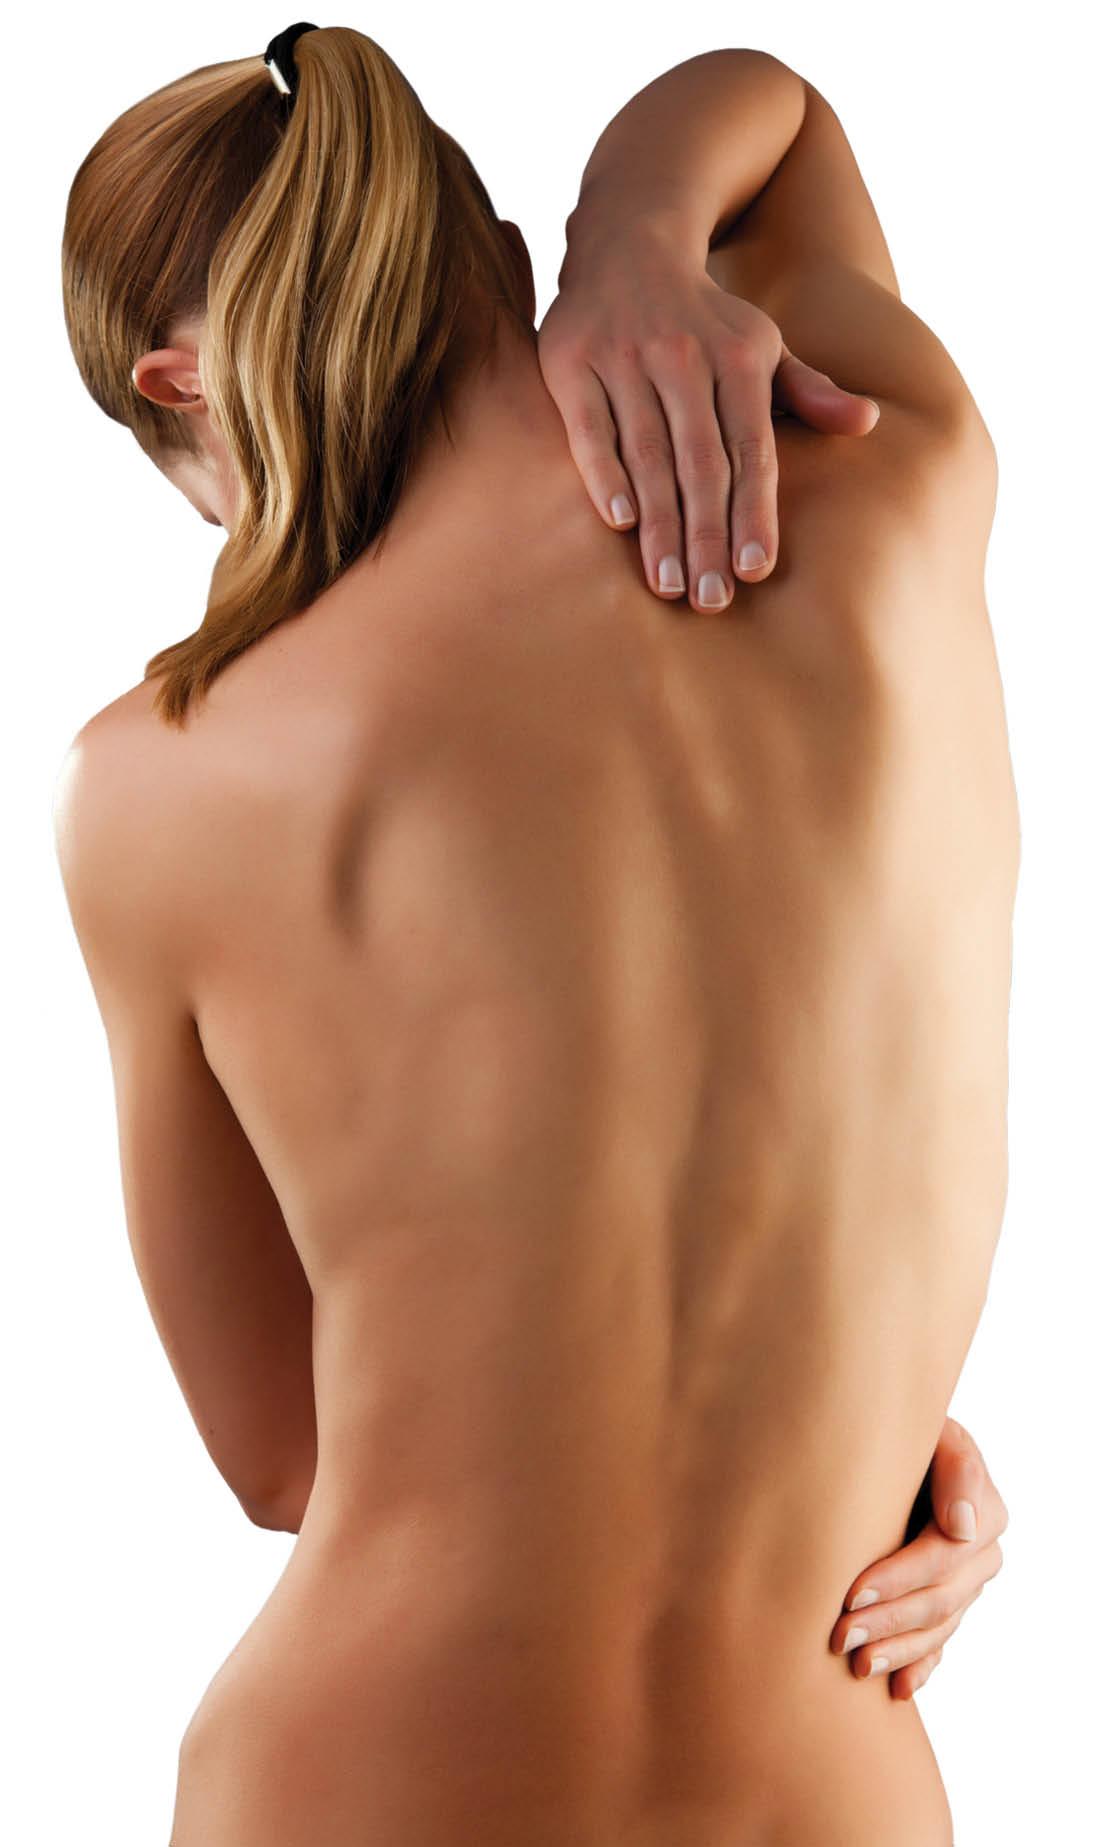 Chiropractic care can help your aching back